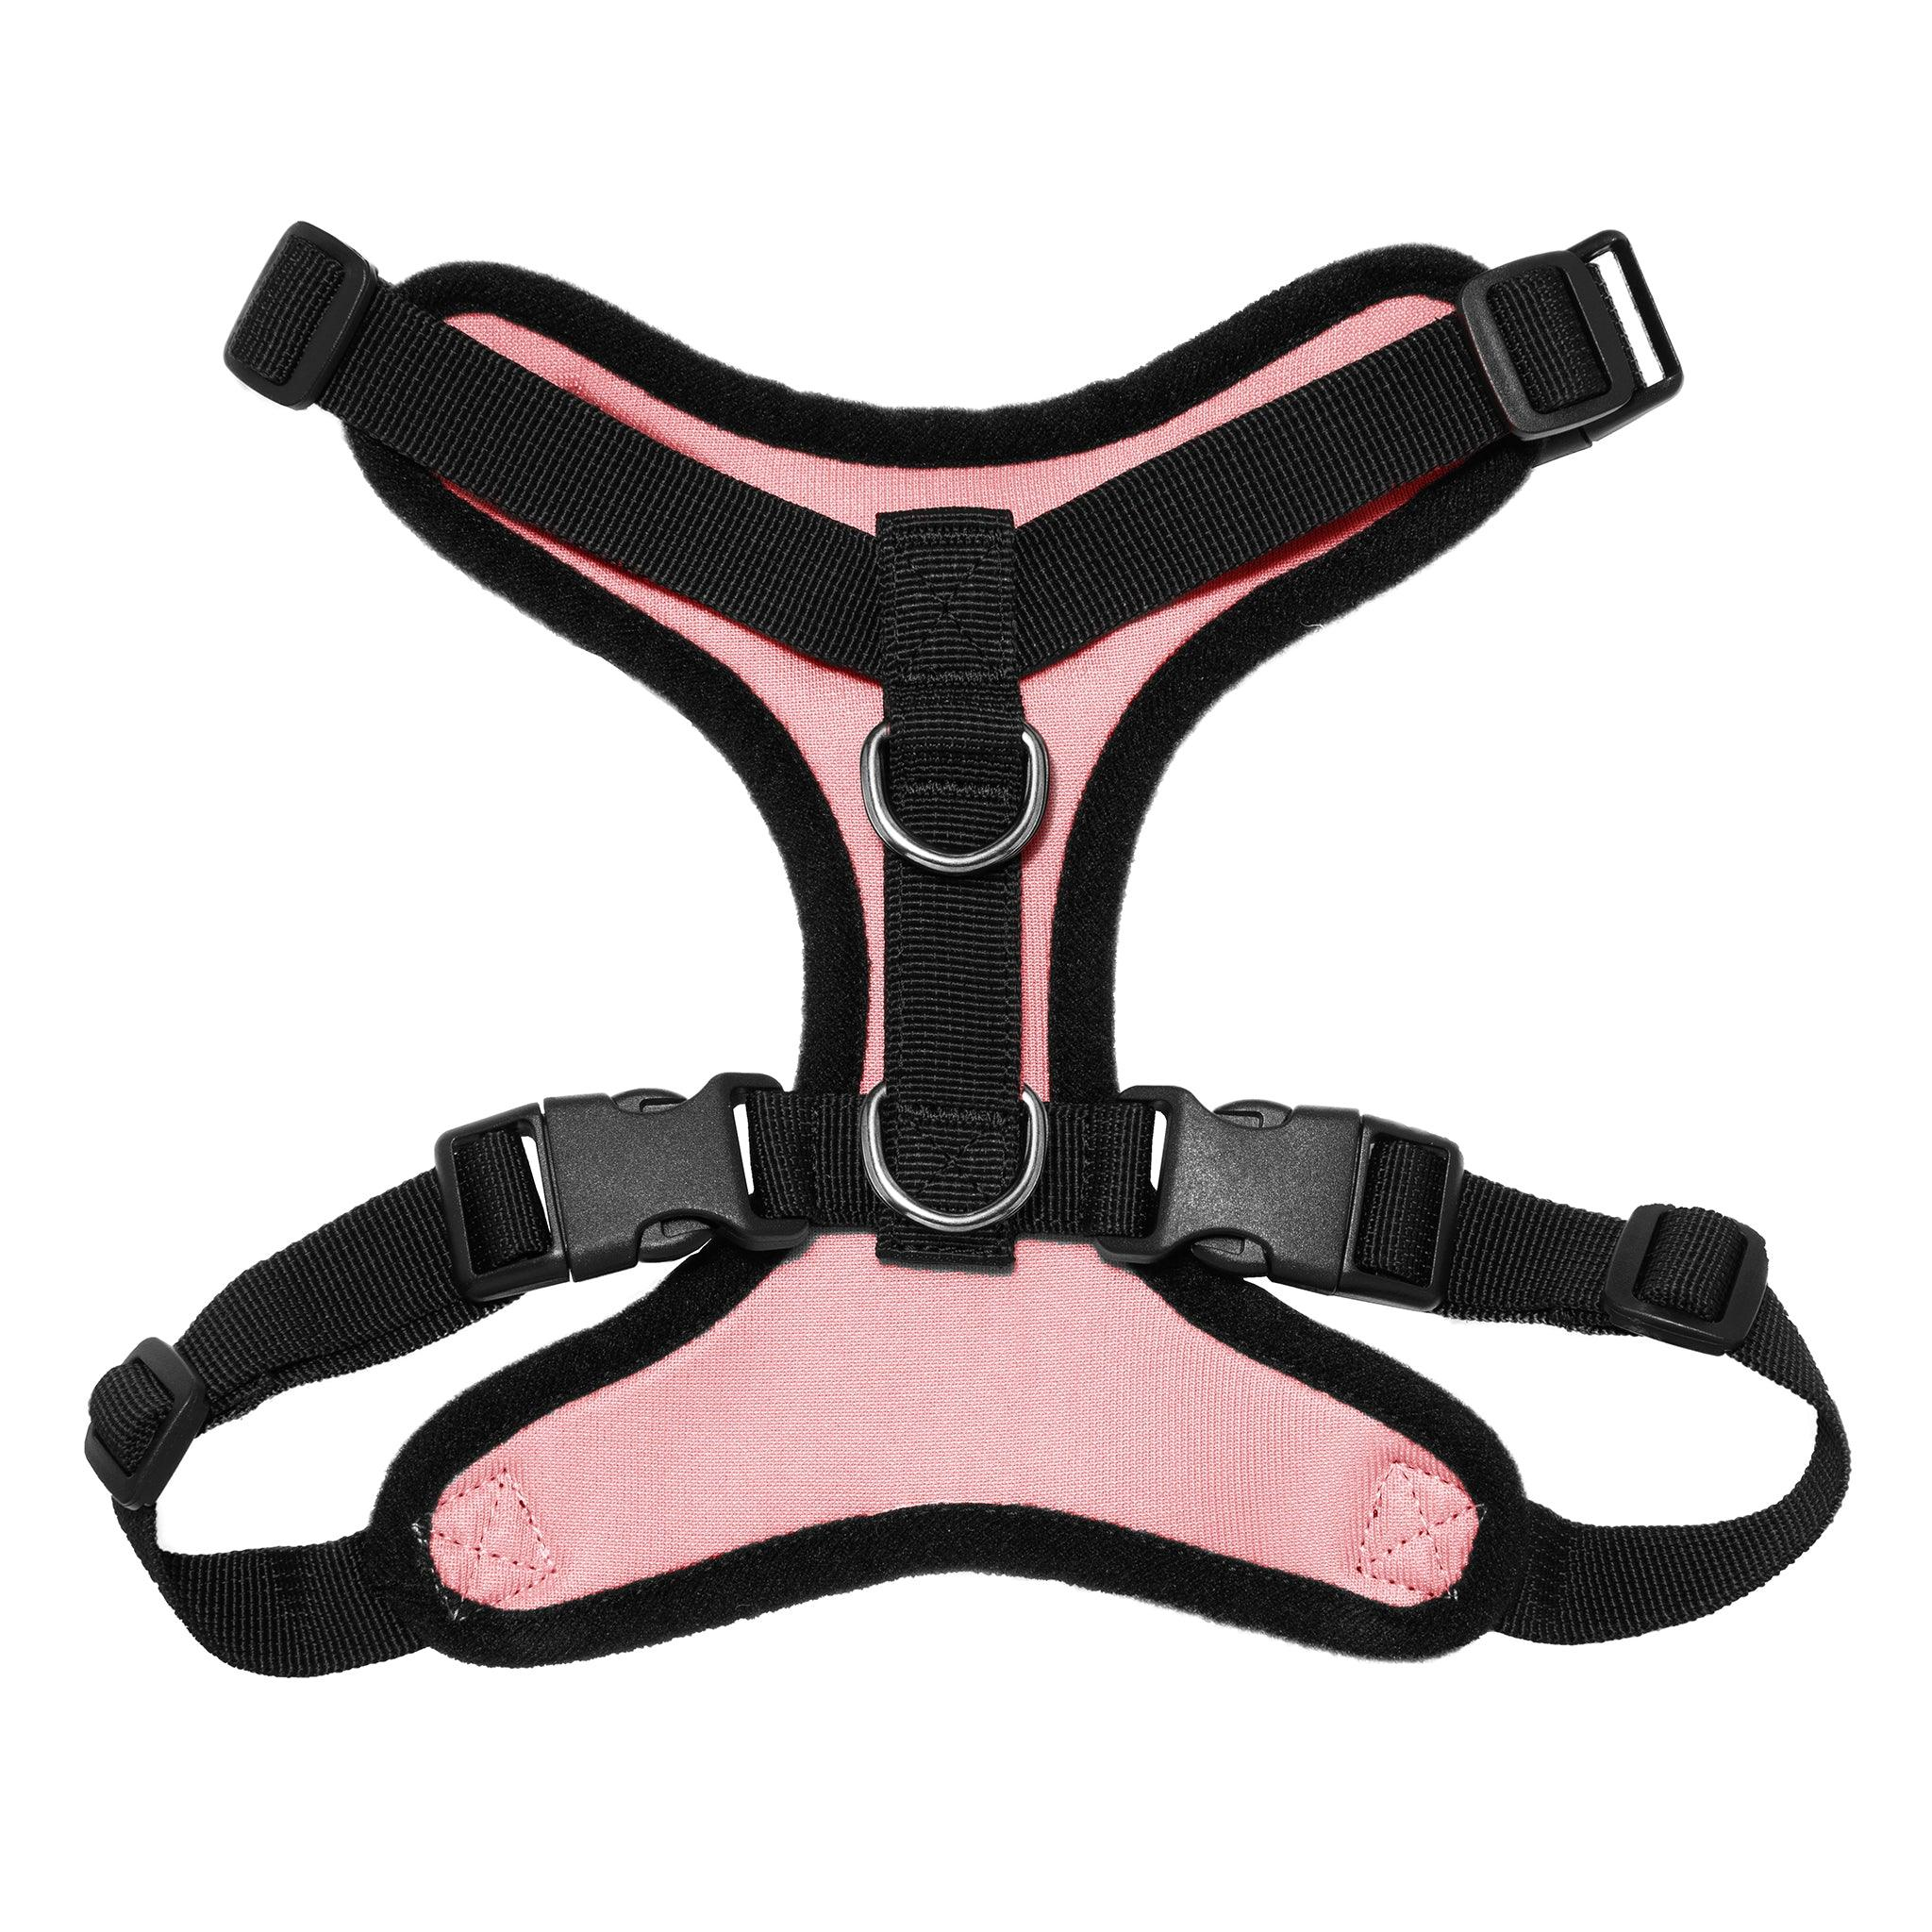 VOYAGER Step-In Lock Dog Harness in Black with Matching Trim and Webbing - Back